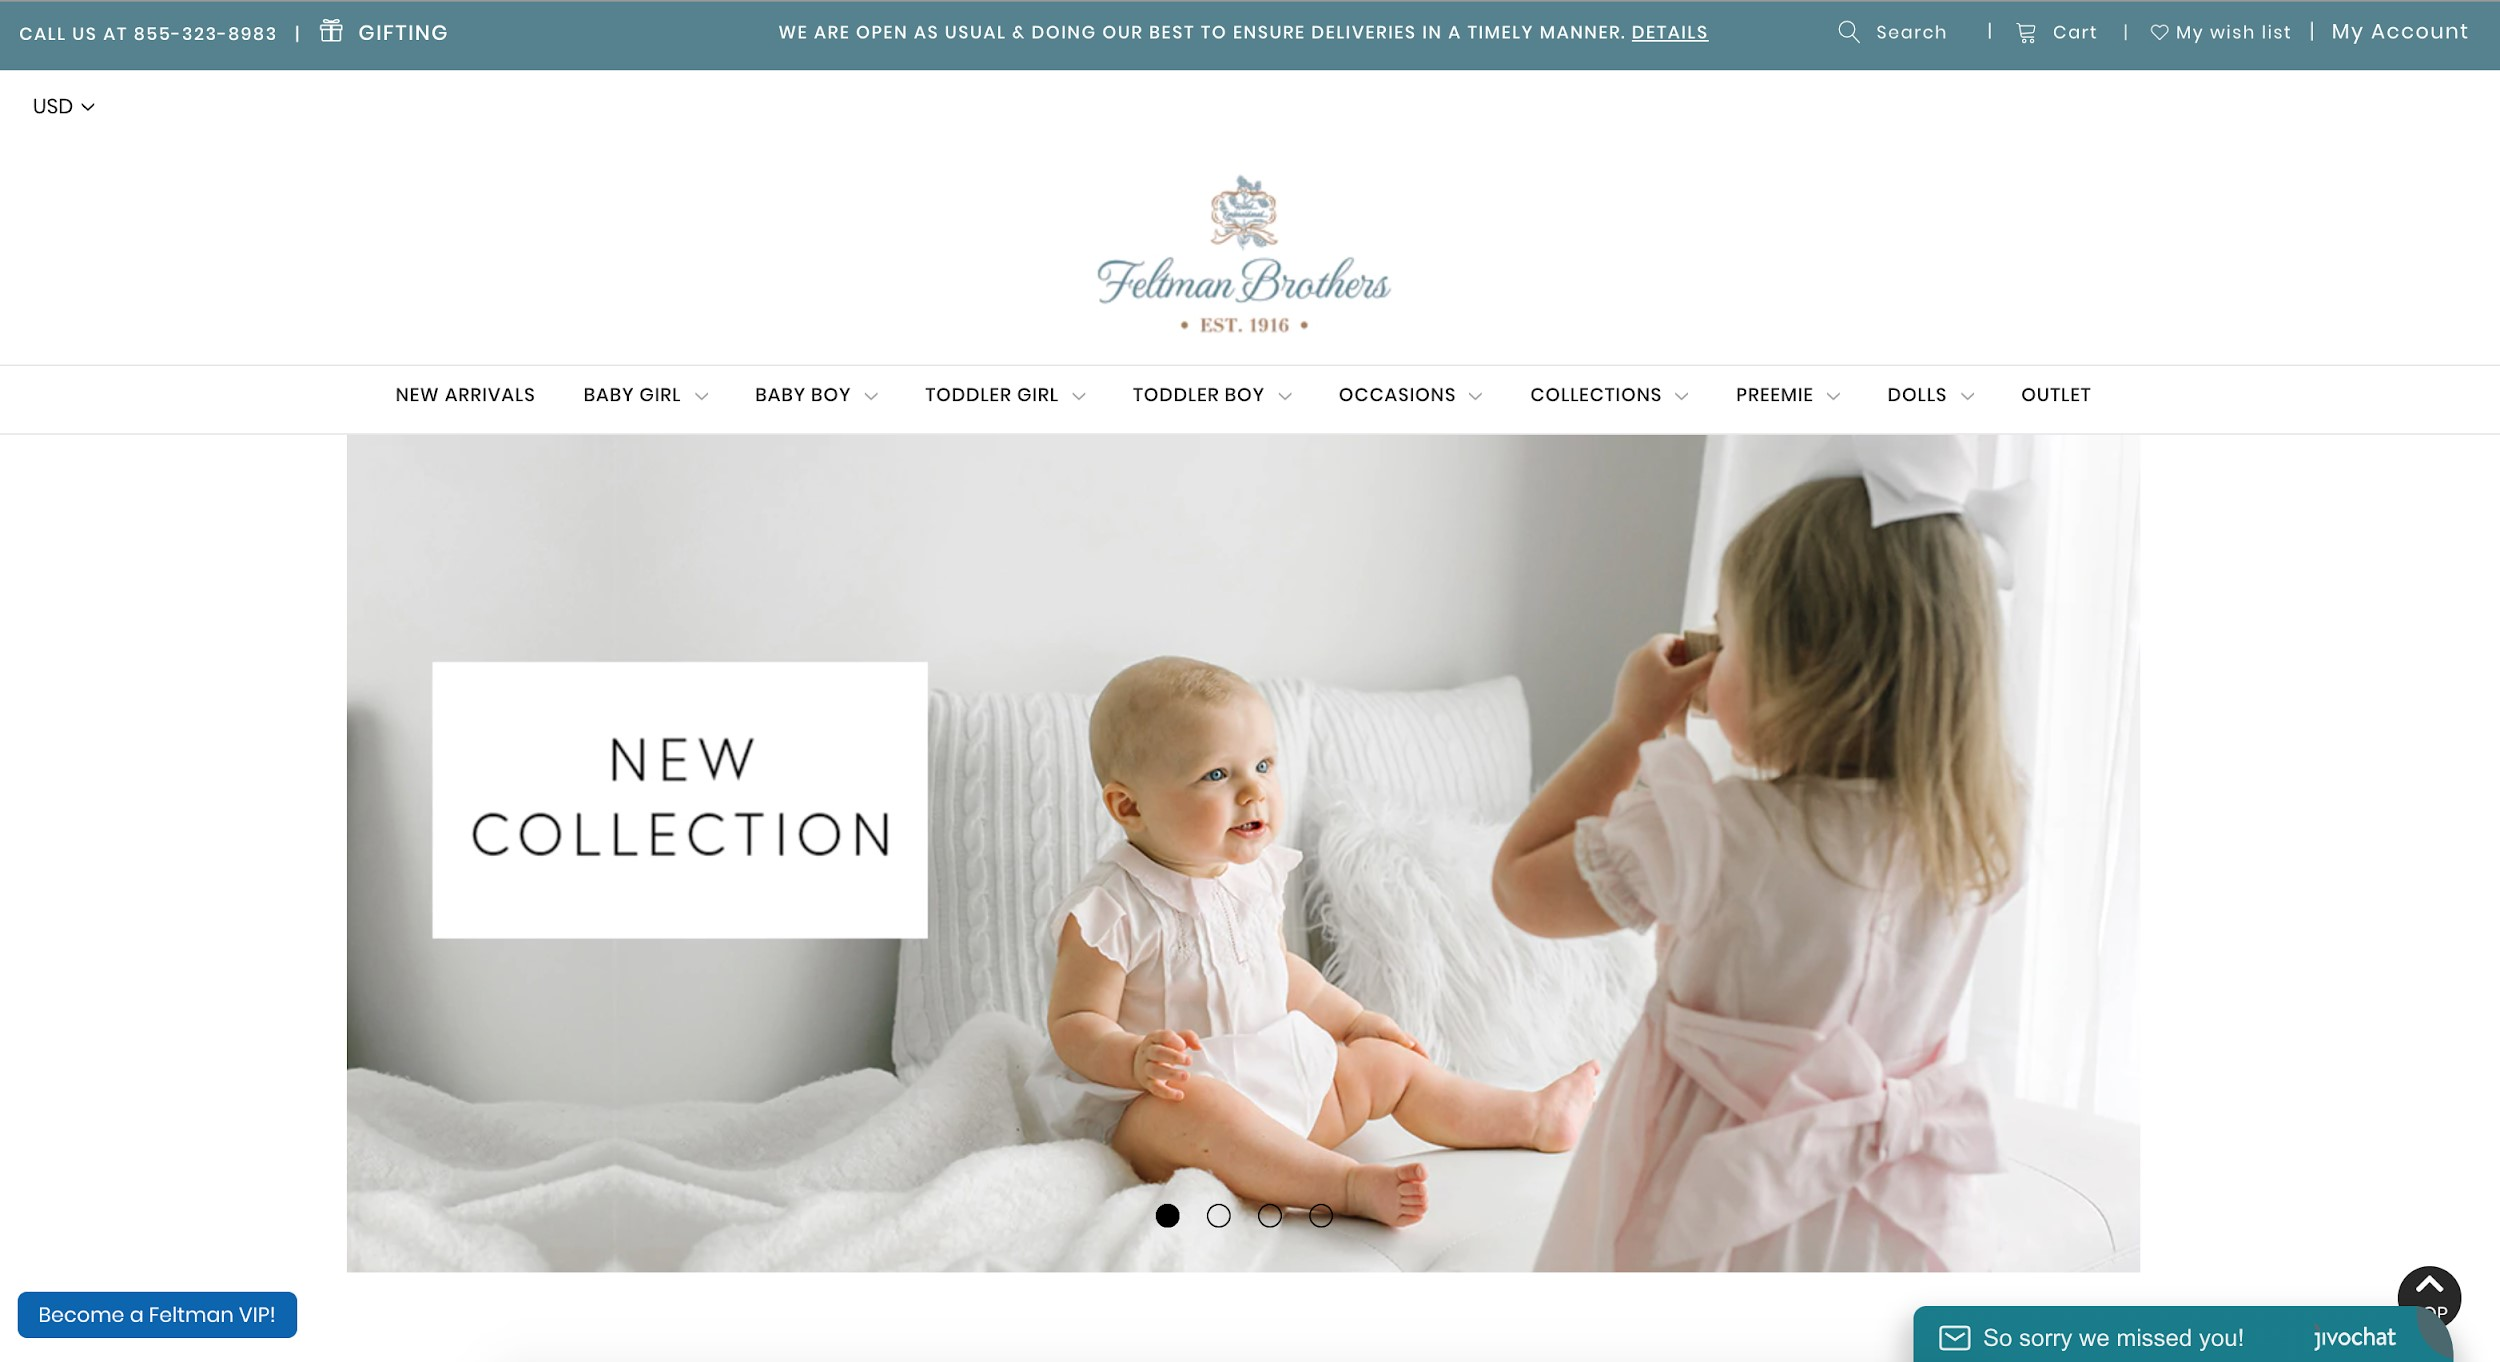 feltman brothers best ecommerce websites